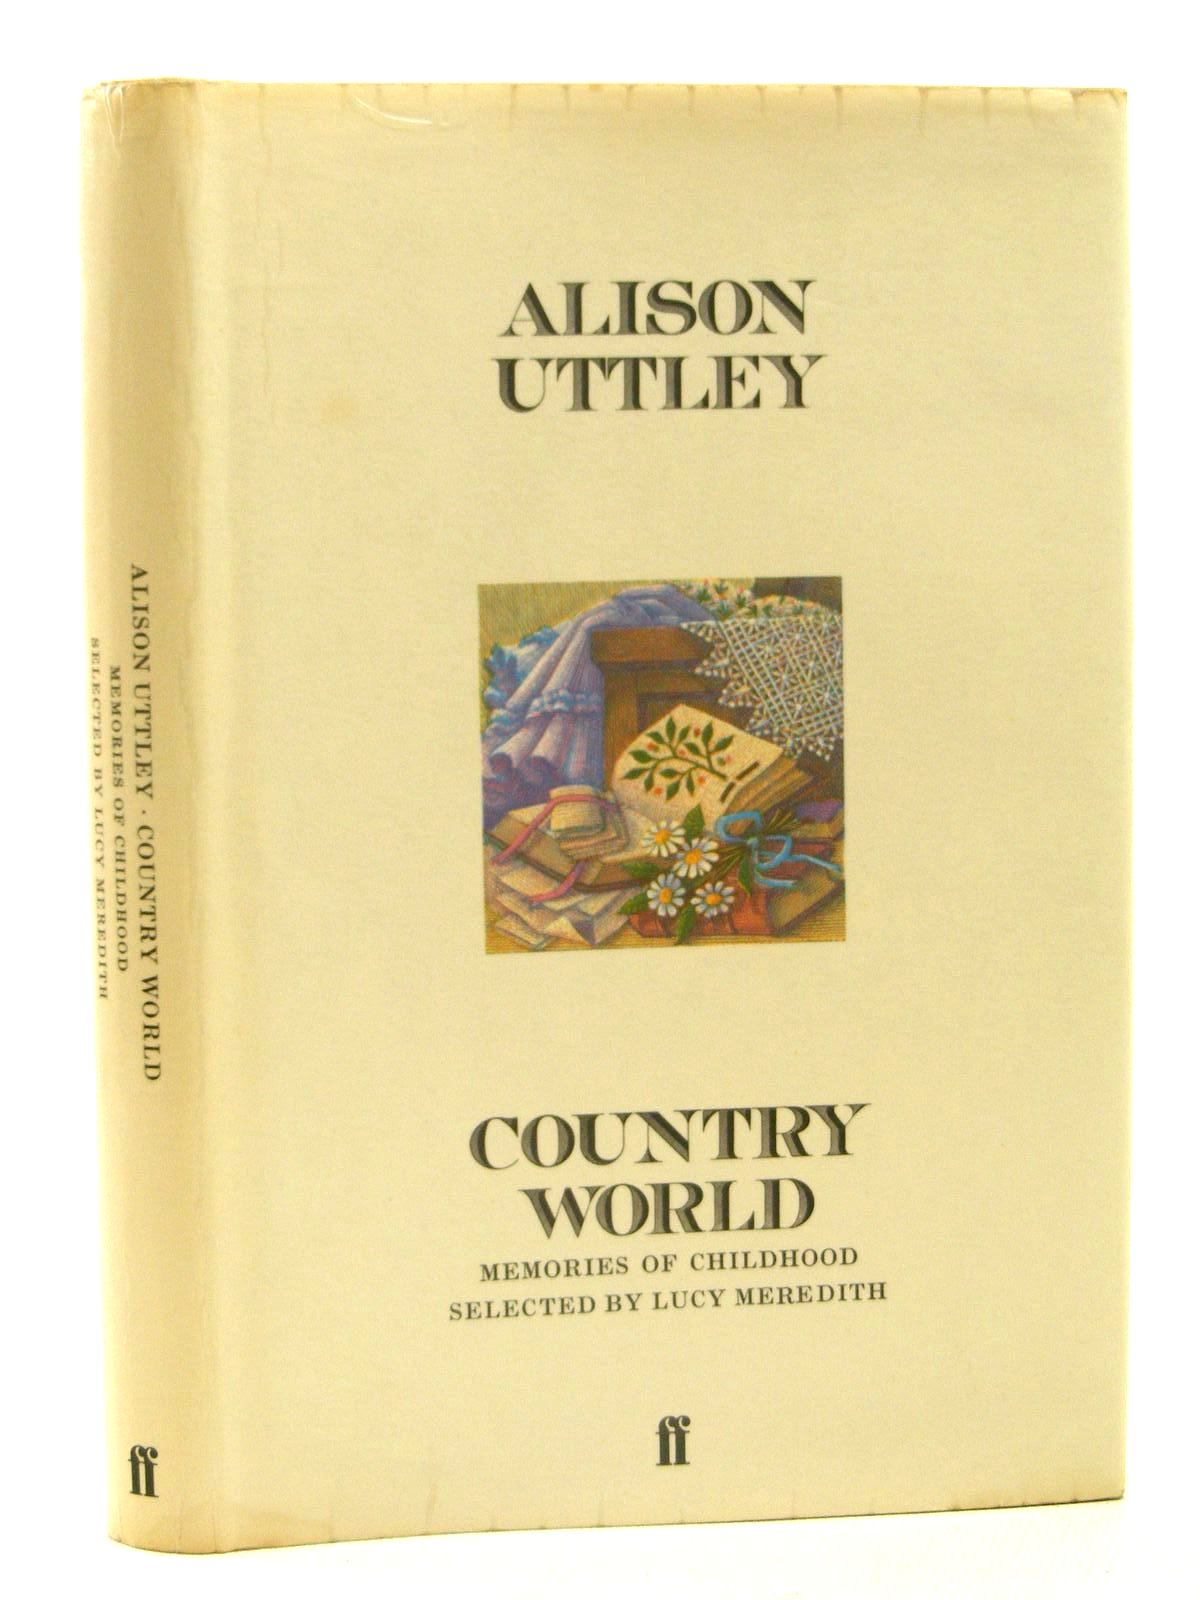 Photo of COUNTRY WORLD MEMORIES OF CHILDHOOD written by Uttley, Alison illustrated by Tunnicliffe, C.F. published by Faber & Faber (STOCK CODE: 1317302)  for sale by Stella & Rose's Books